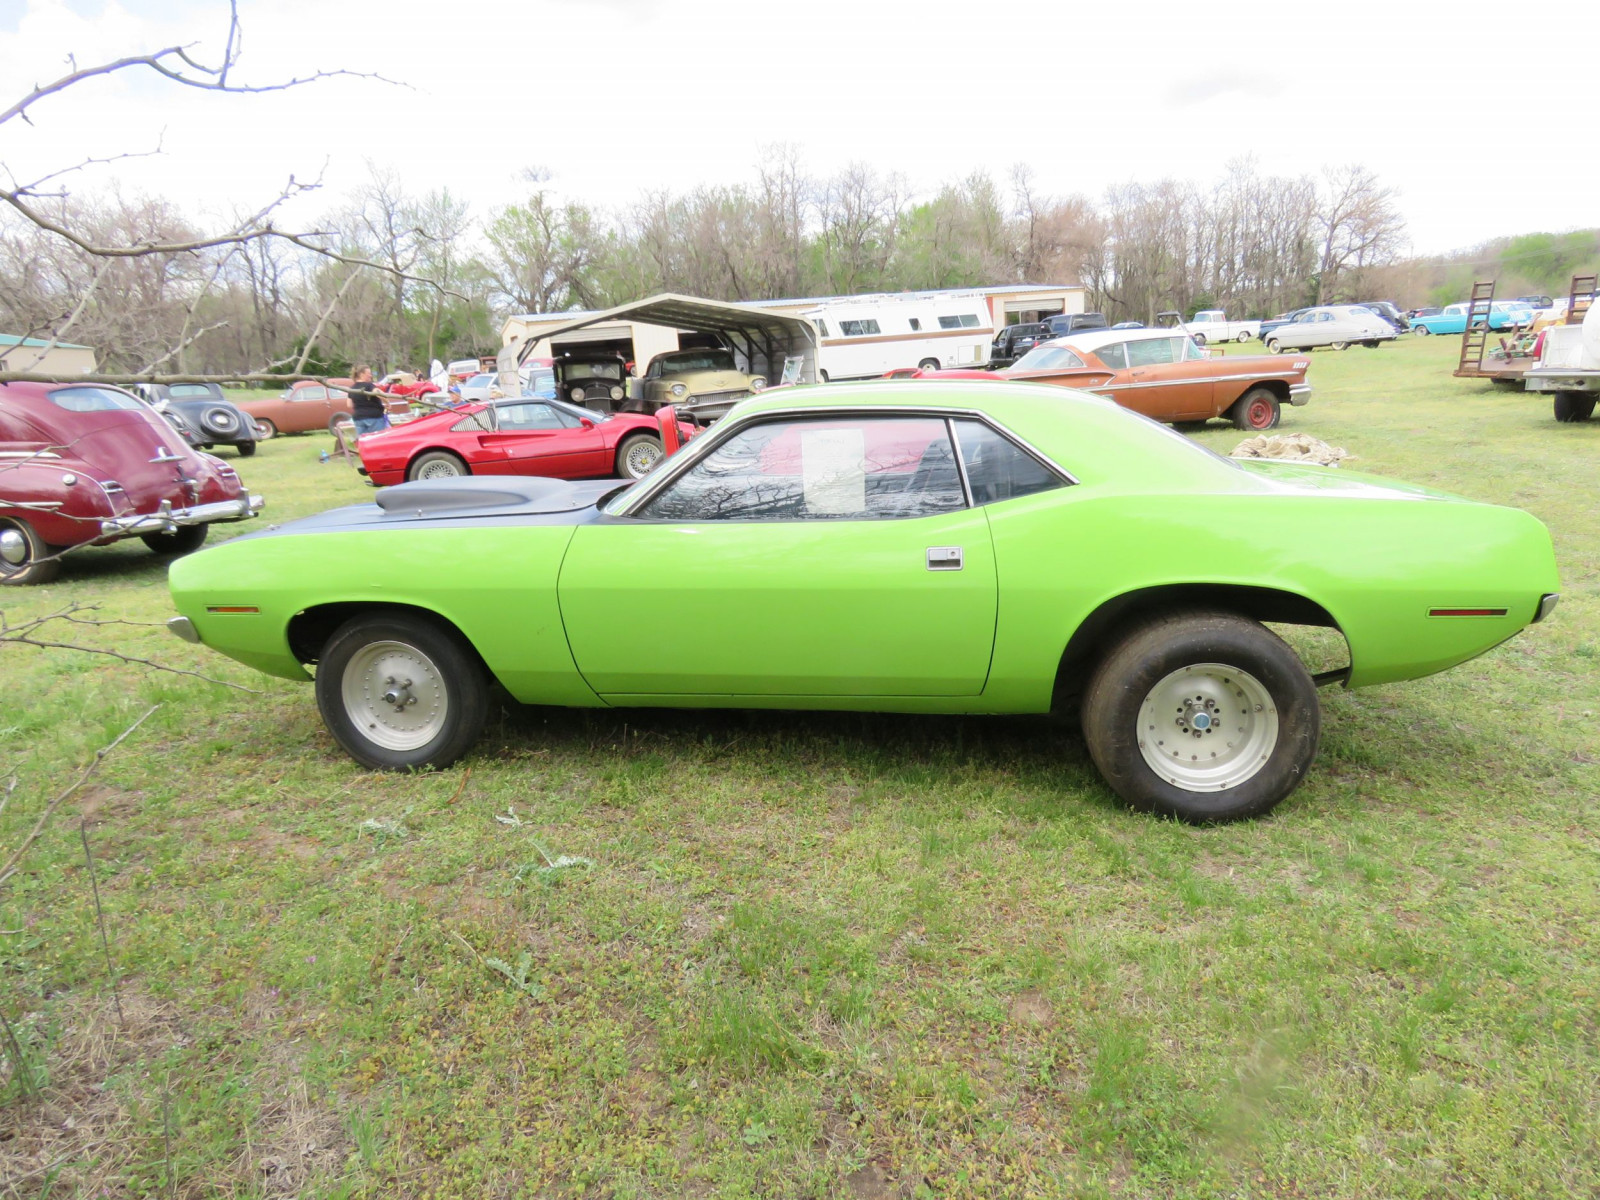 1970 PLYMOUTH CUDA DRAG CAR - Image 4